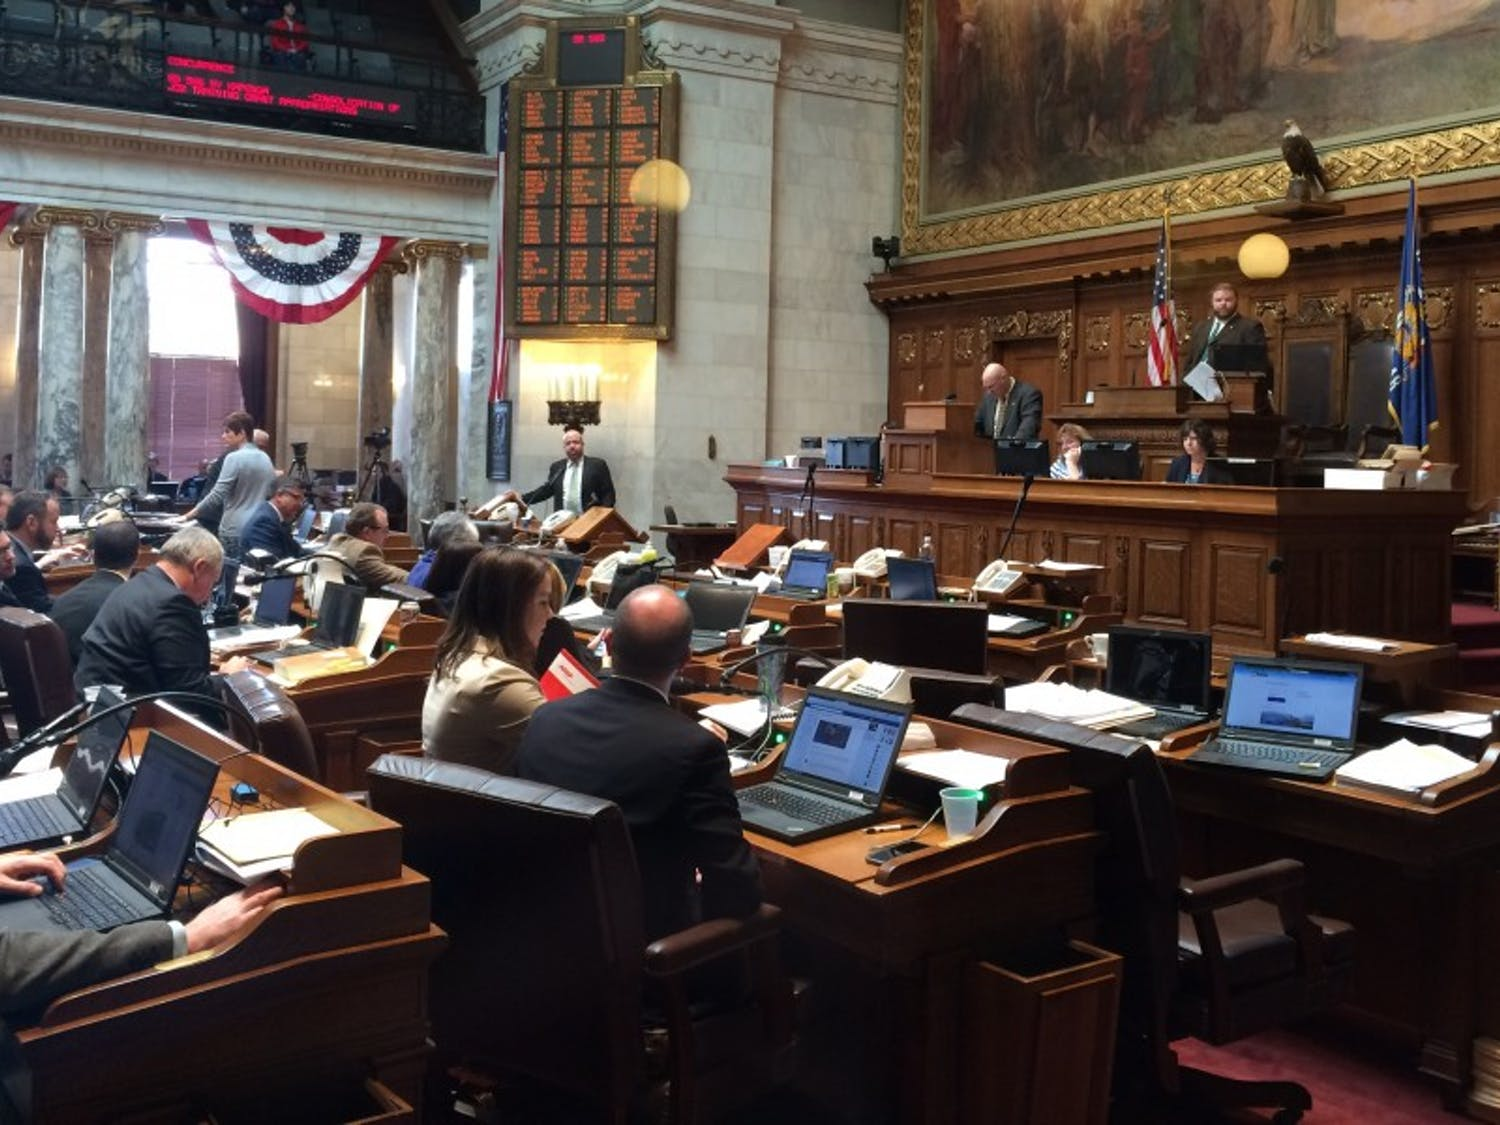 The State Assembly met for likely the last time for this year on Thursday.